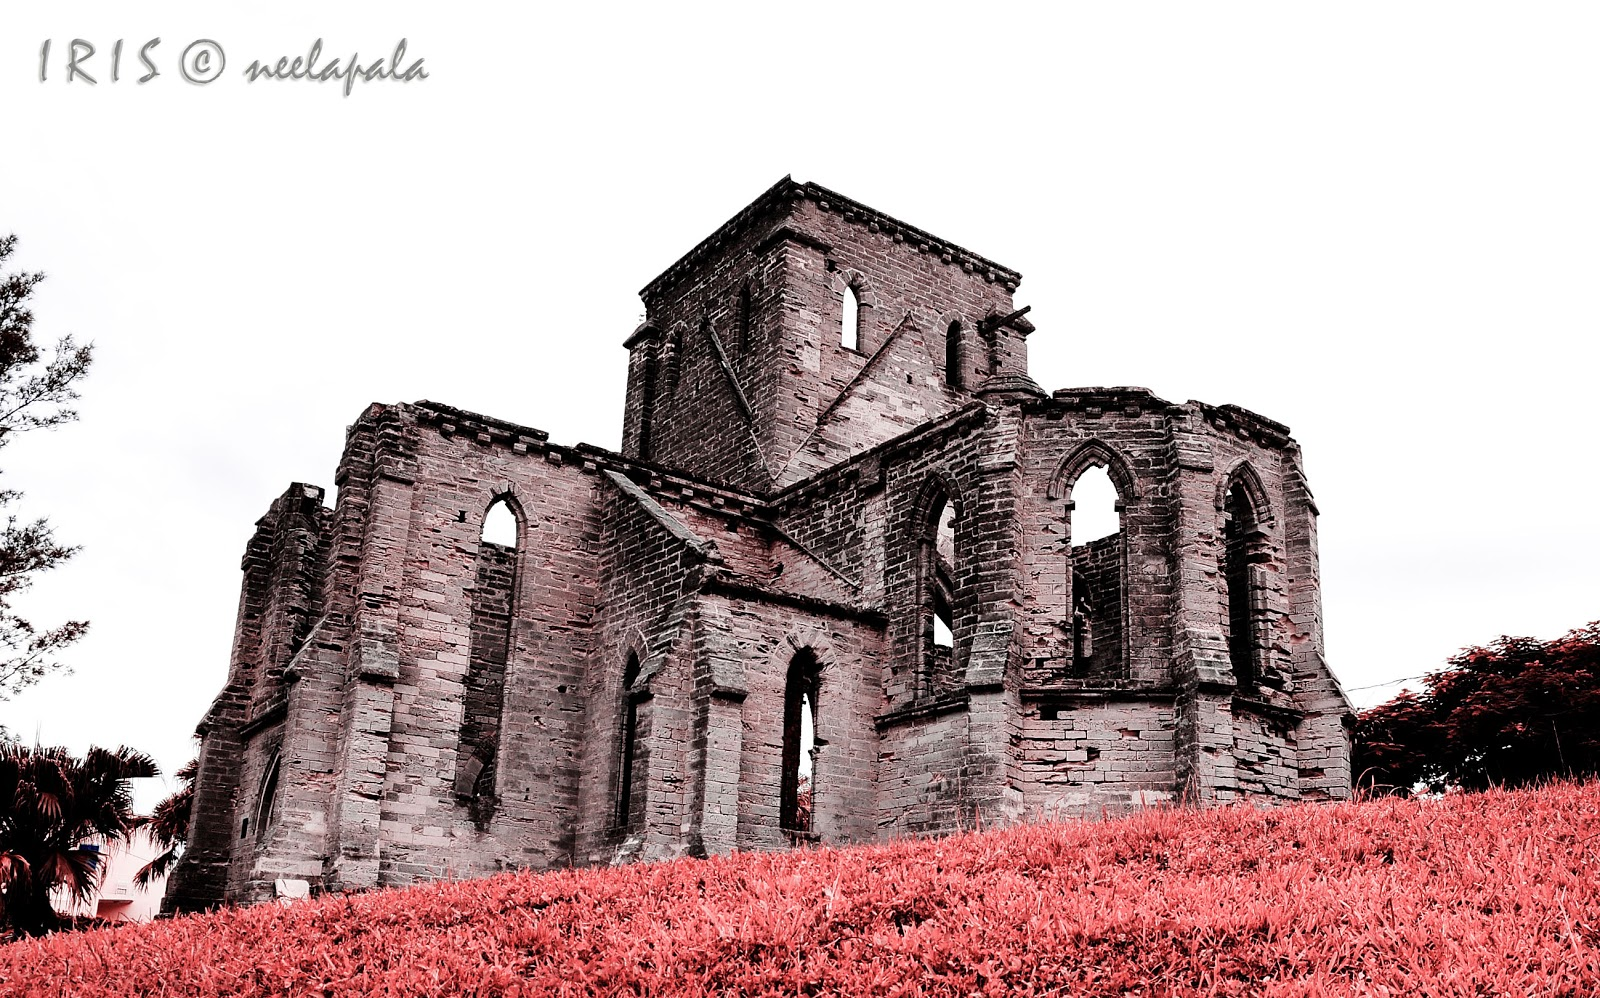 Unfinished Church, Infrared